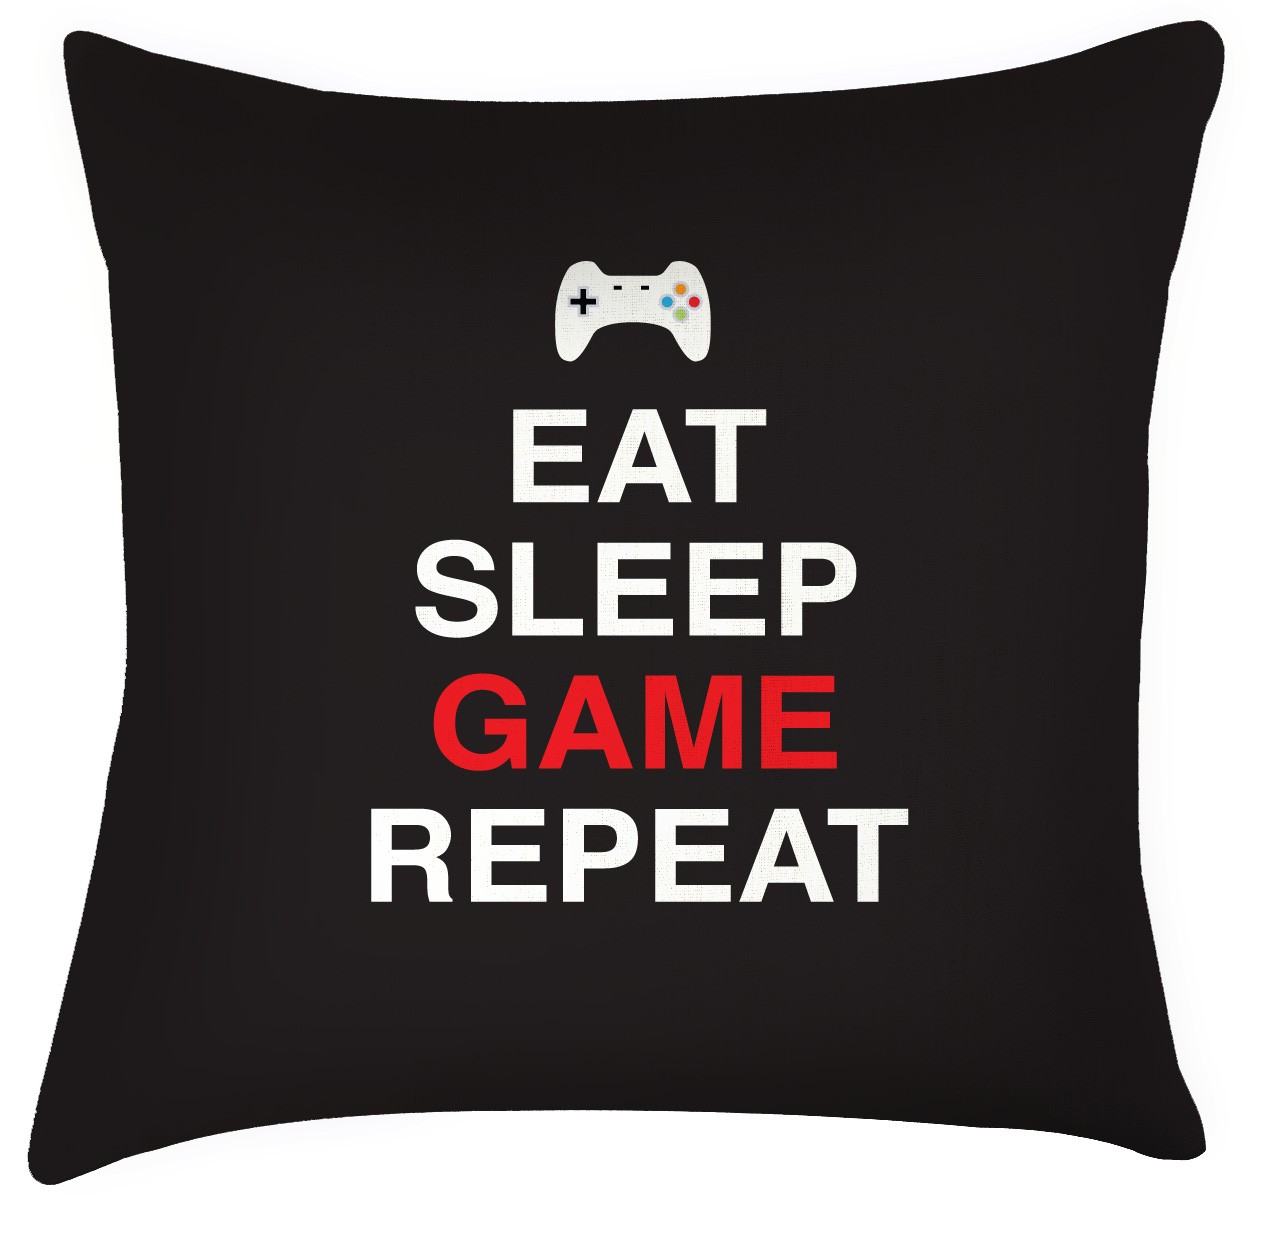 Eat Sleep Game Repeat Cushion Great Fathers Day Gift